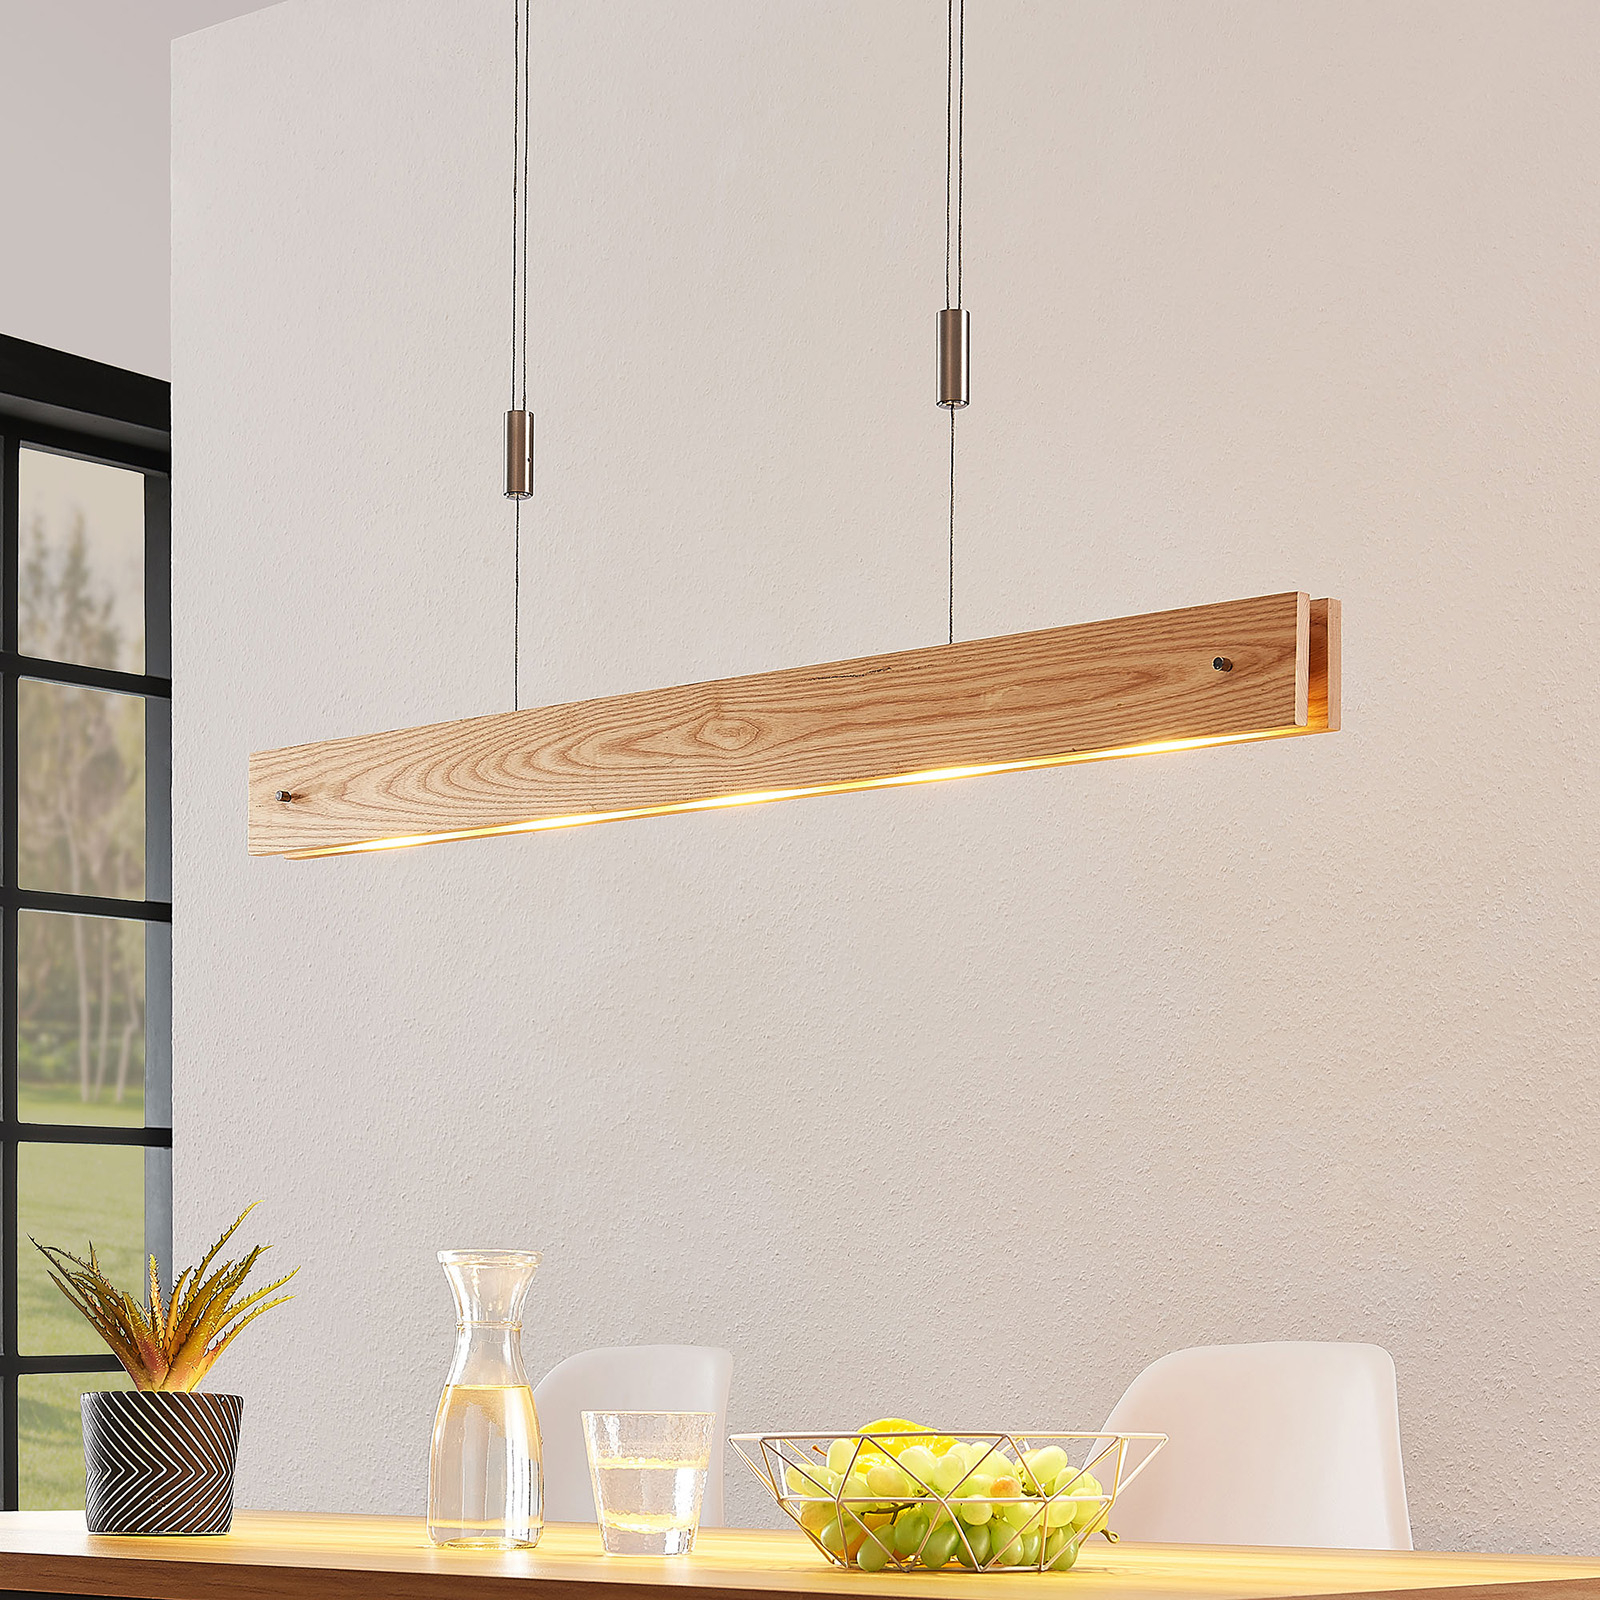 Suspension LED en bois Karinja, variateur, naturel